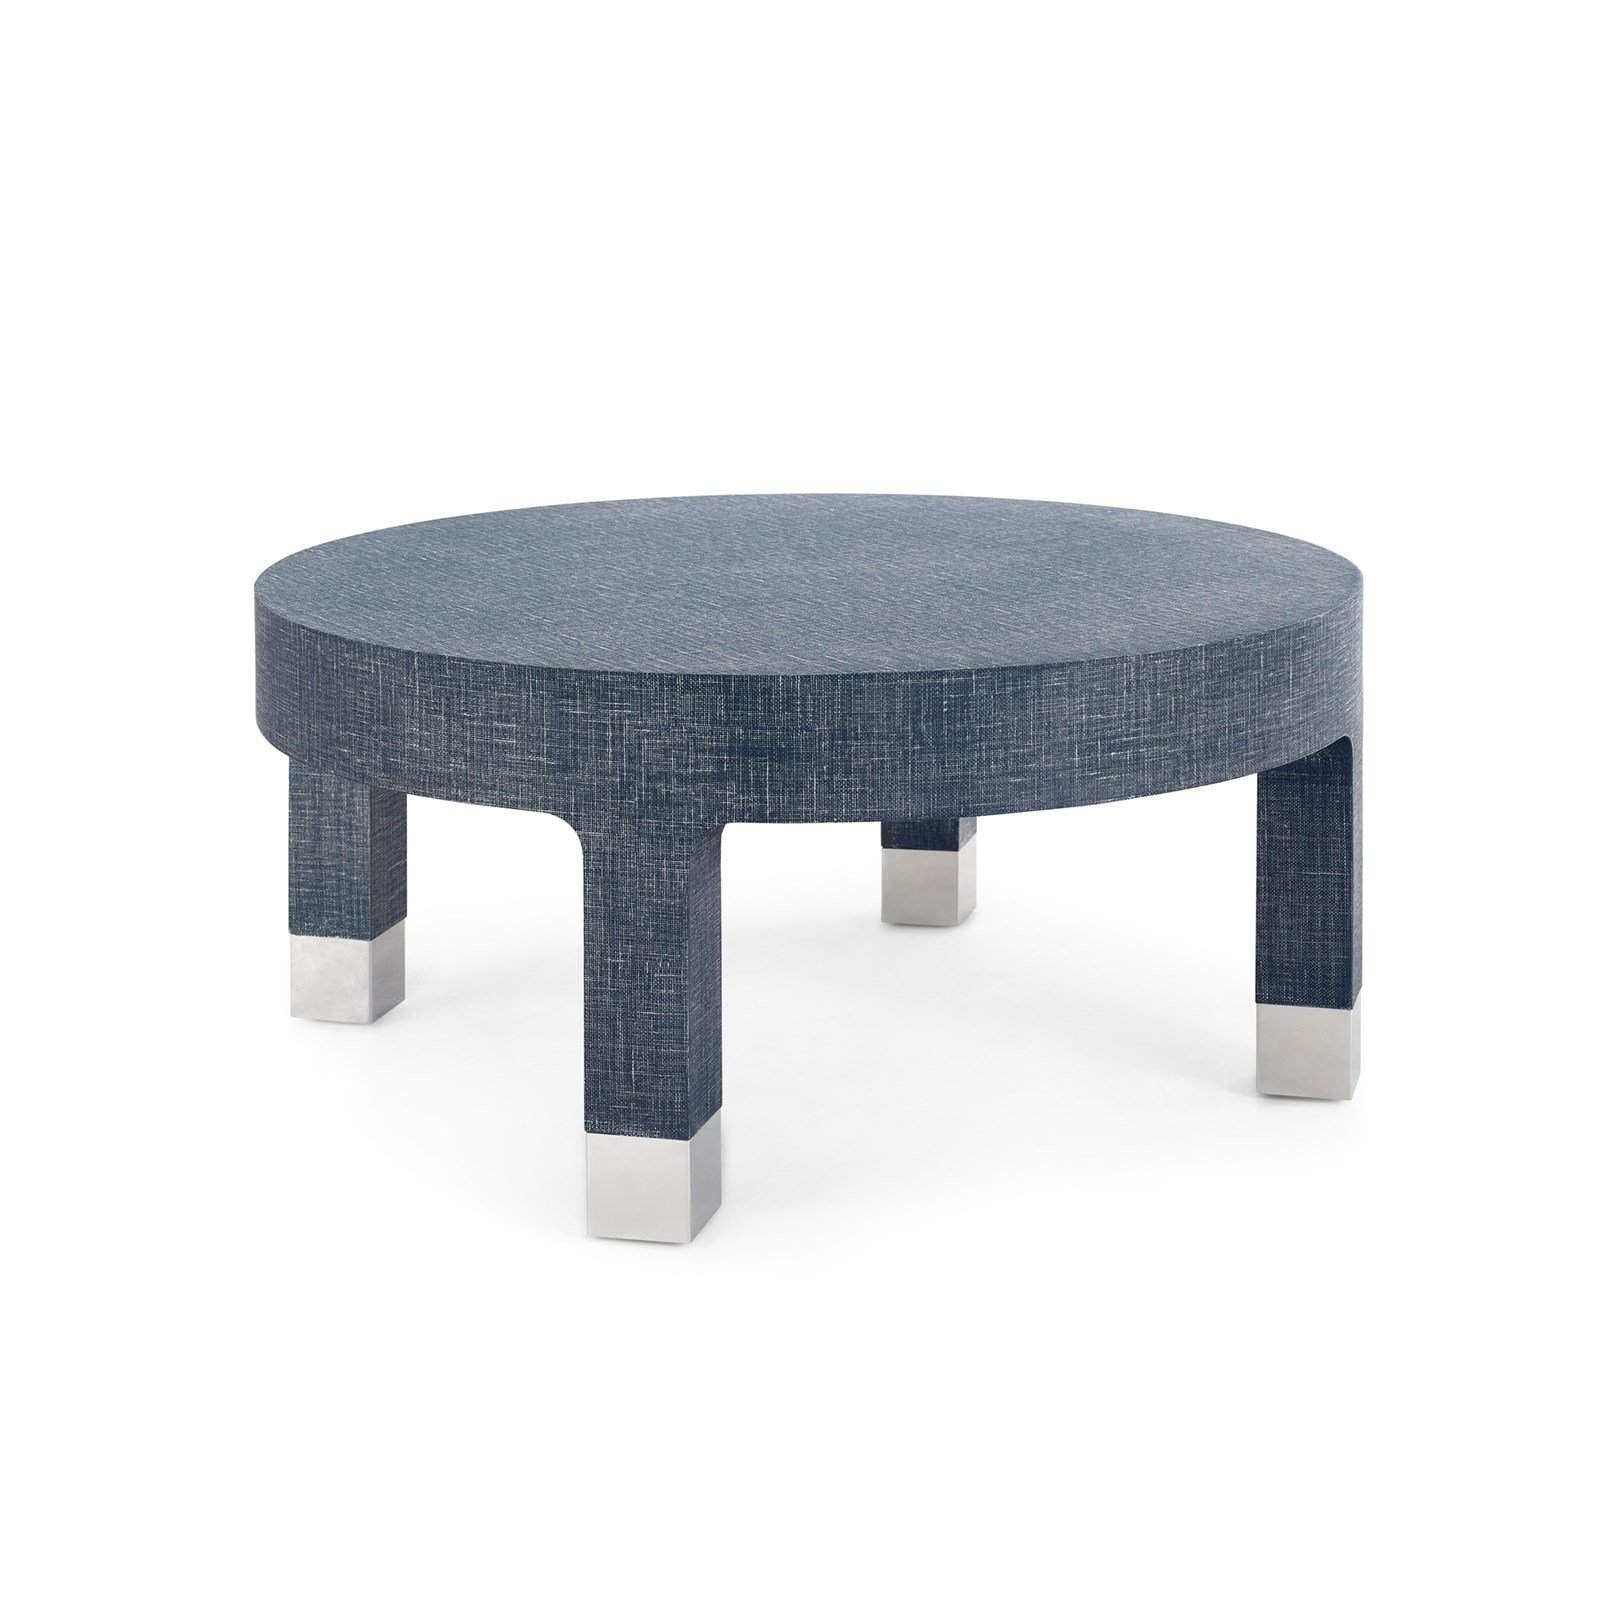 Bungalow 5 - DAKOTA ROUND COFFEE TABLE in NAVY BLUE